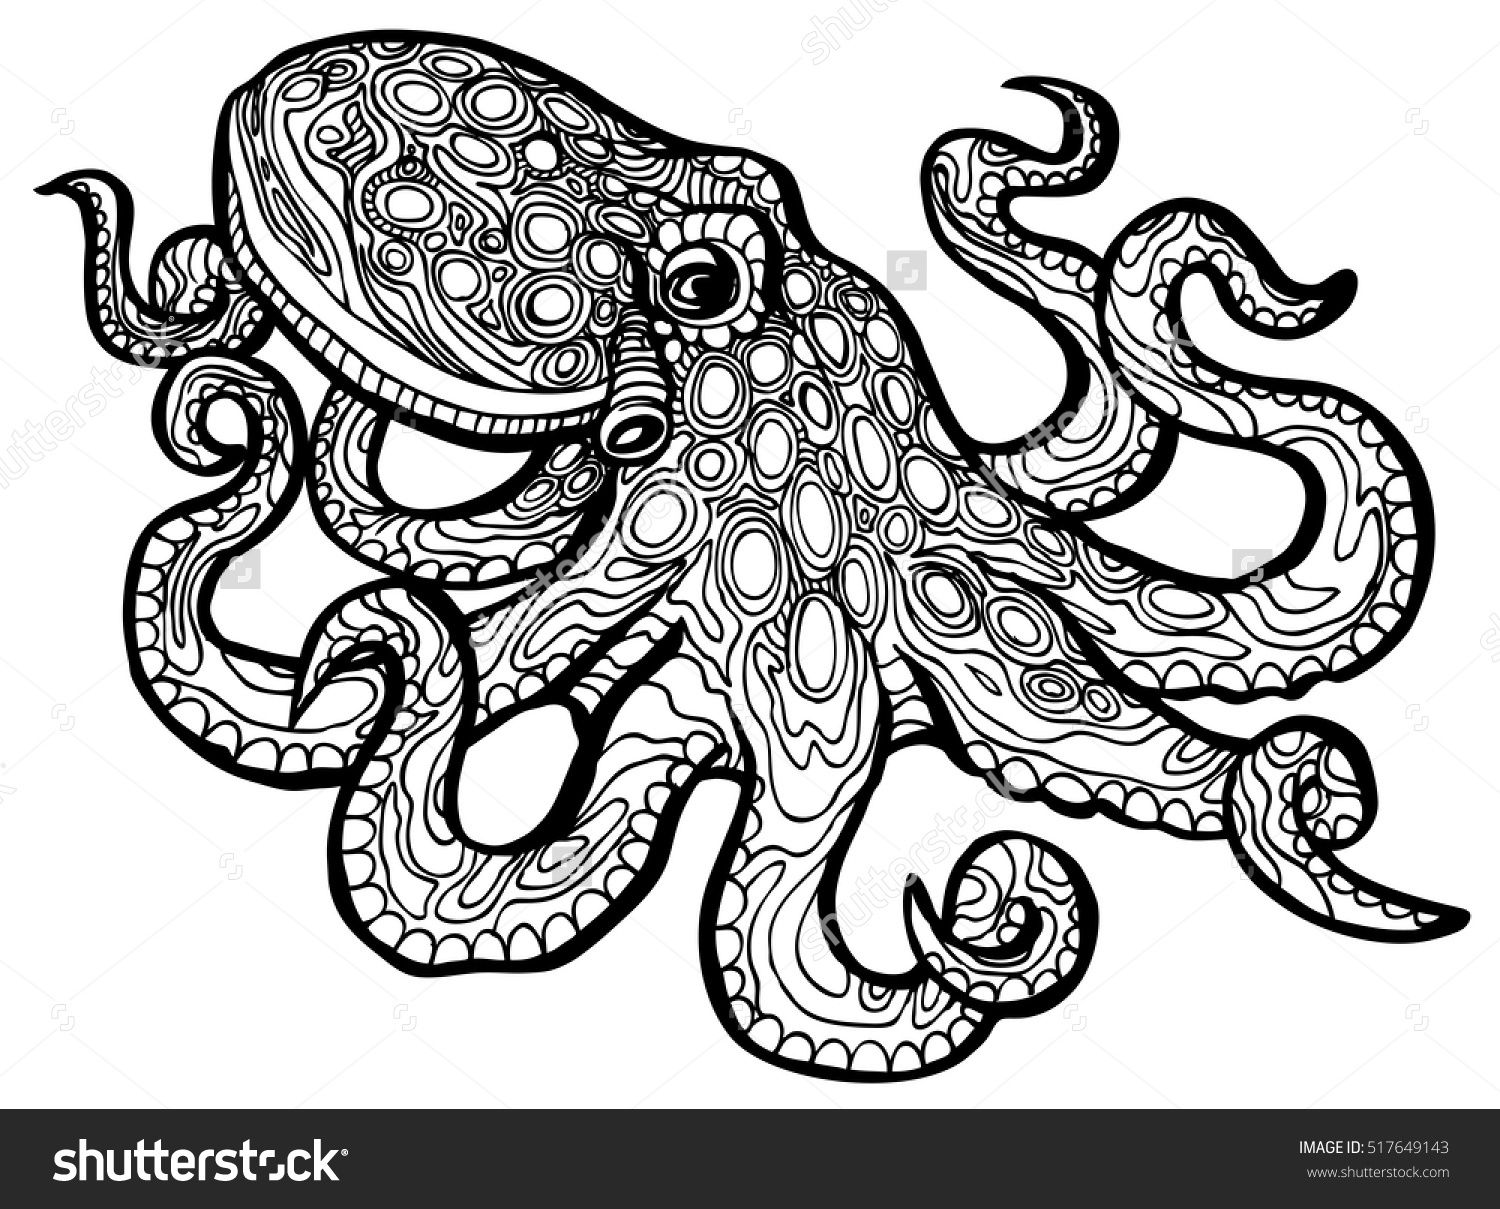 mandala octopus coloring page stylized octopus vector illustration for coloring book octopus coloring mandala page